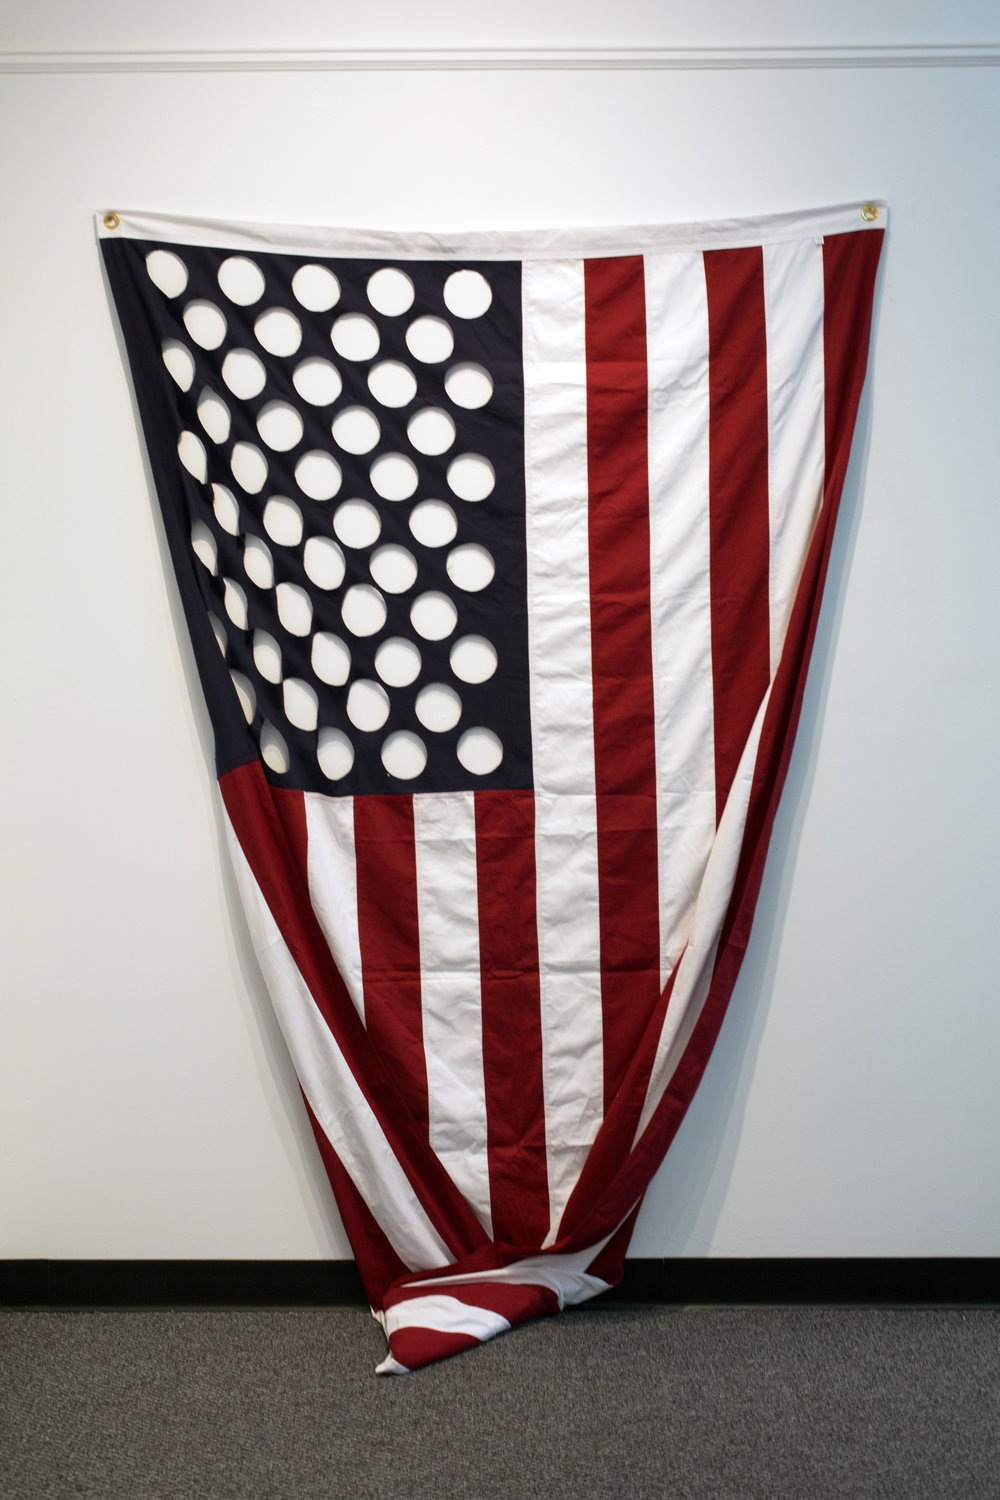 "#27 (War is Peace…)  United States Burial flag on glass 48""x36""x6"" 2018  Photo Courtesy: Anna C. Robertson"